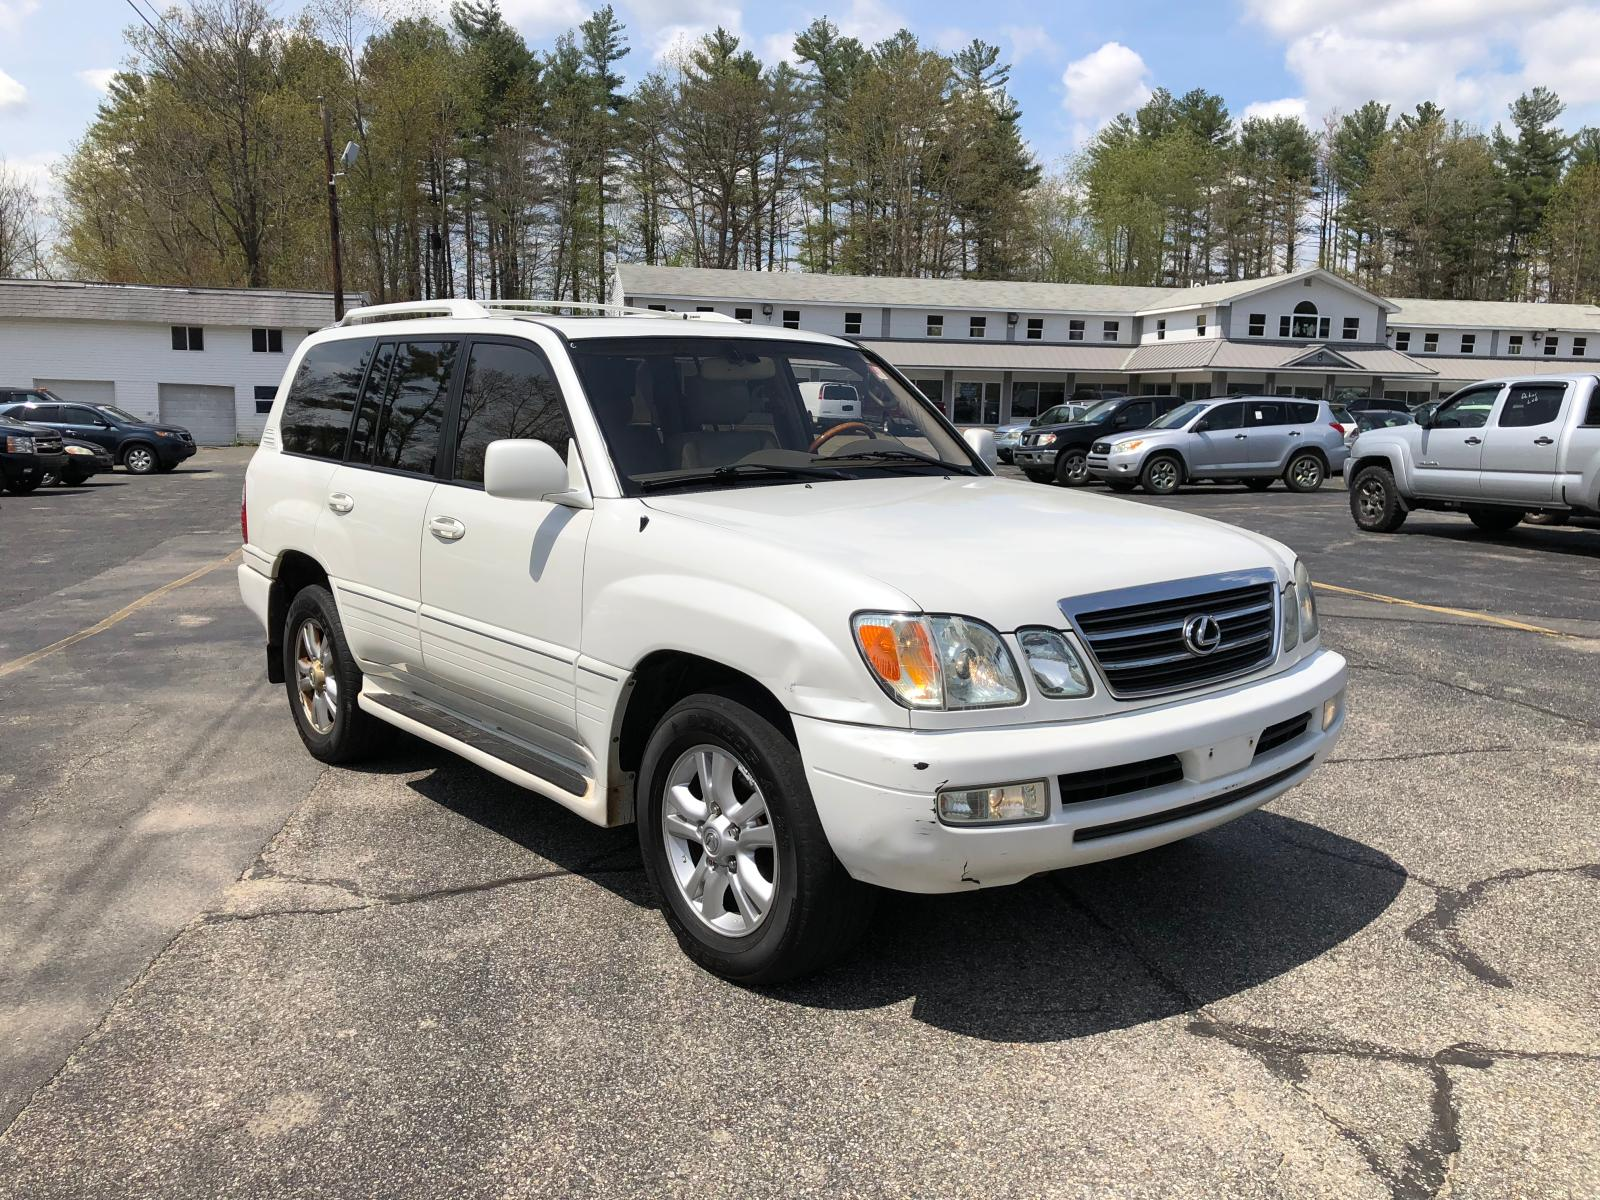 fort gx lexus inspirational tx of used suv worth for sale